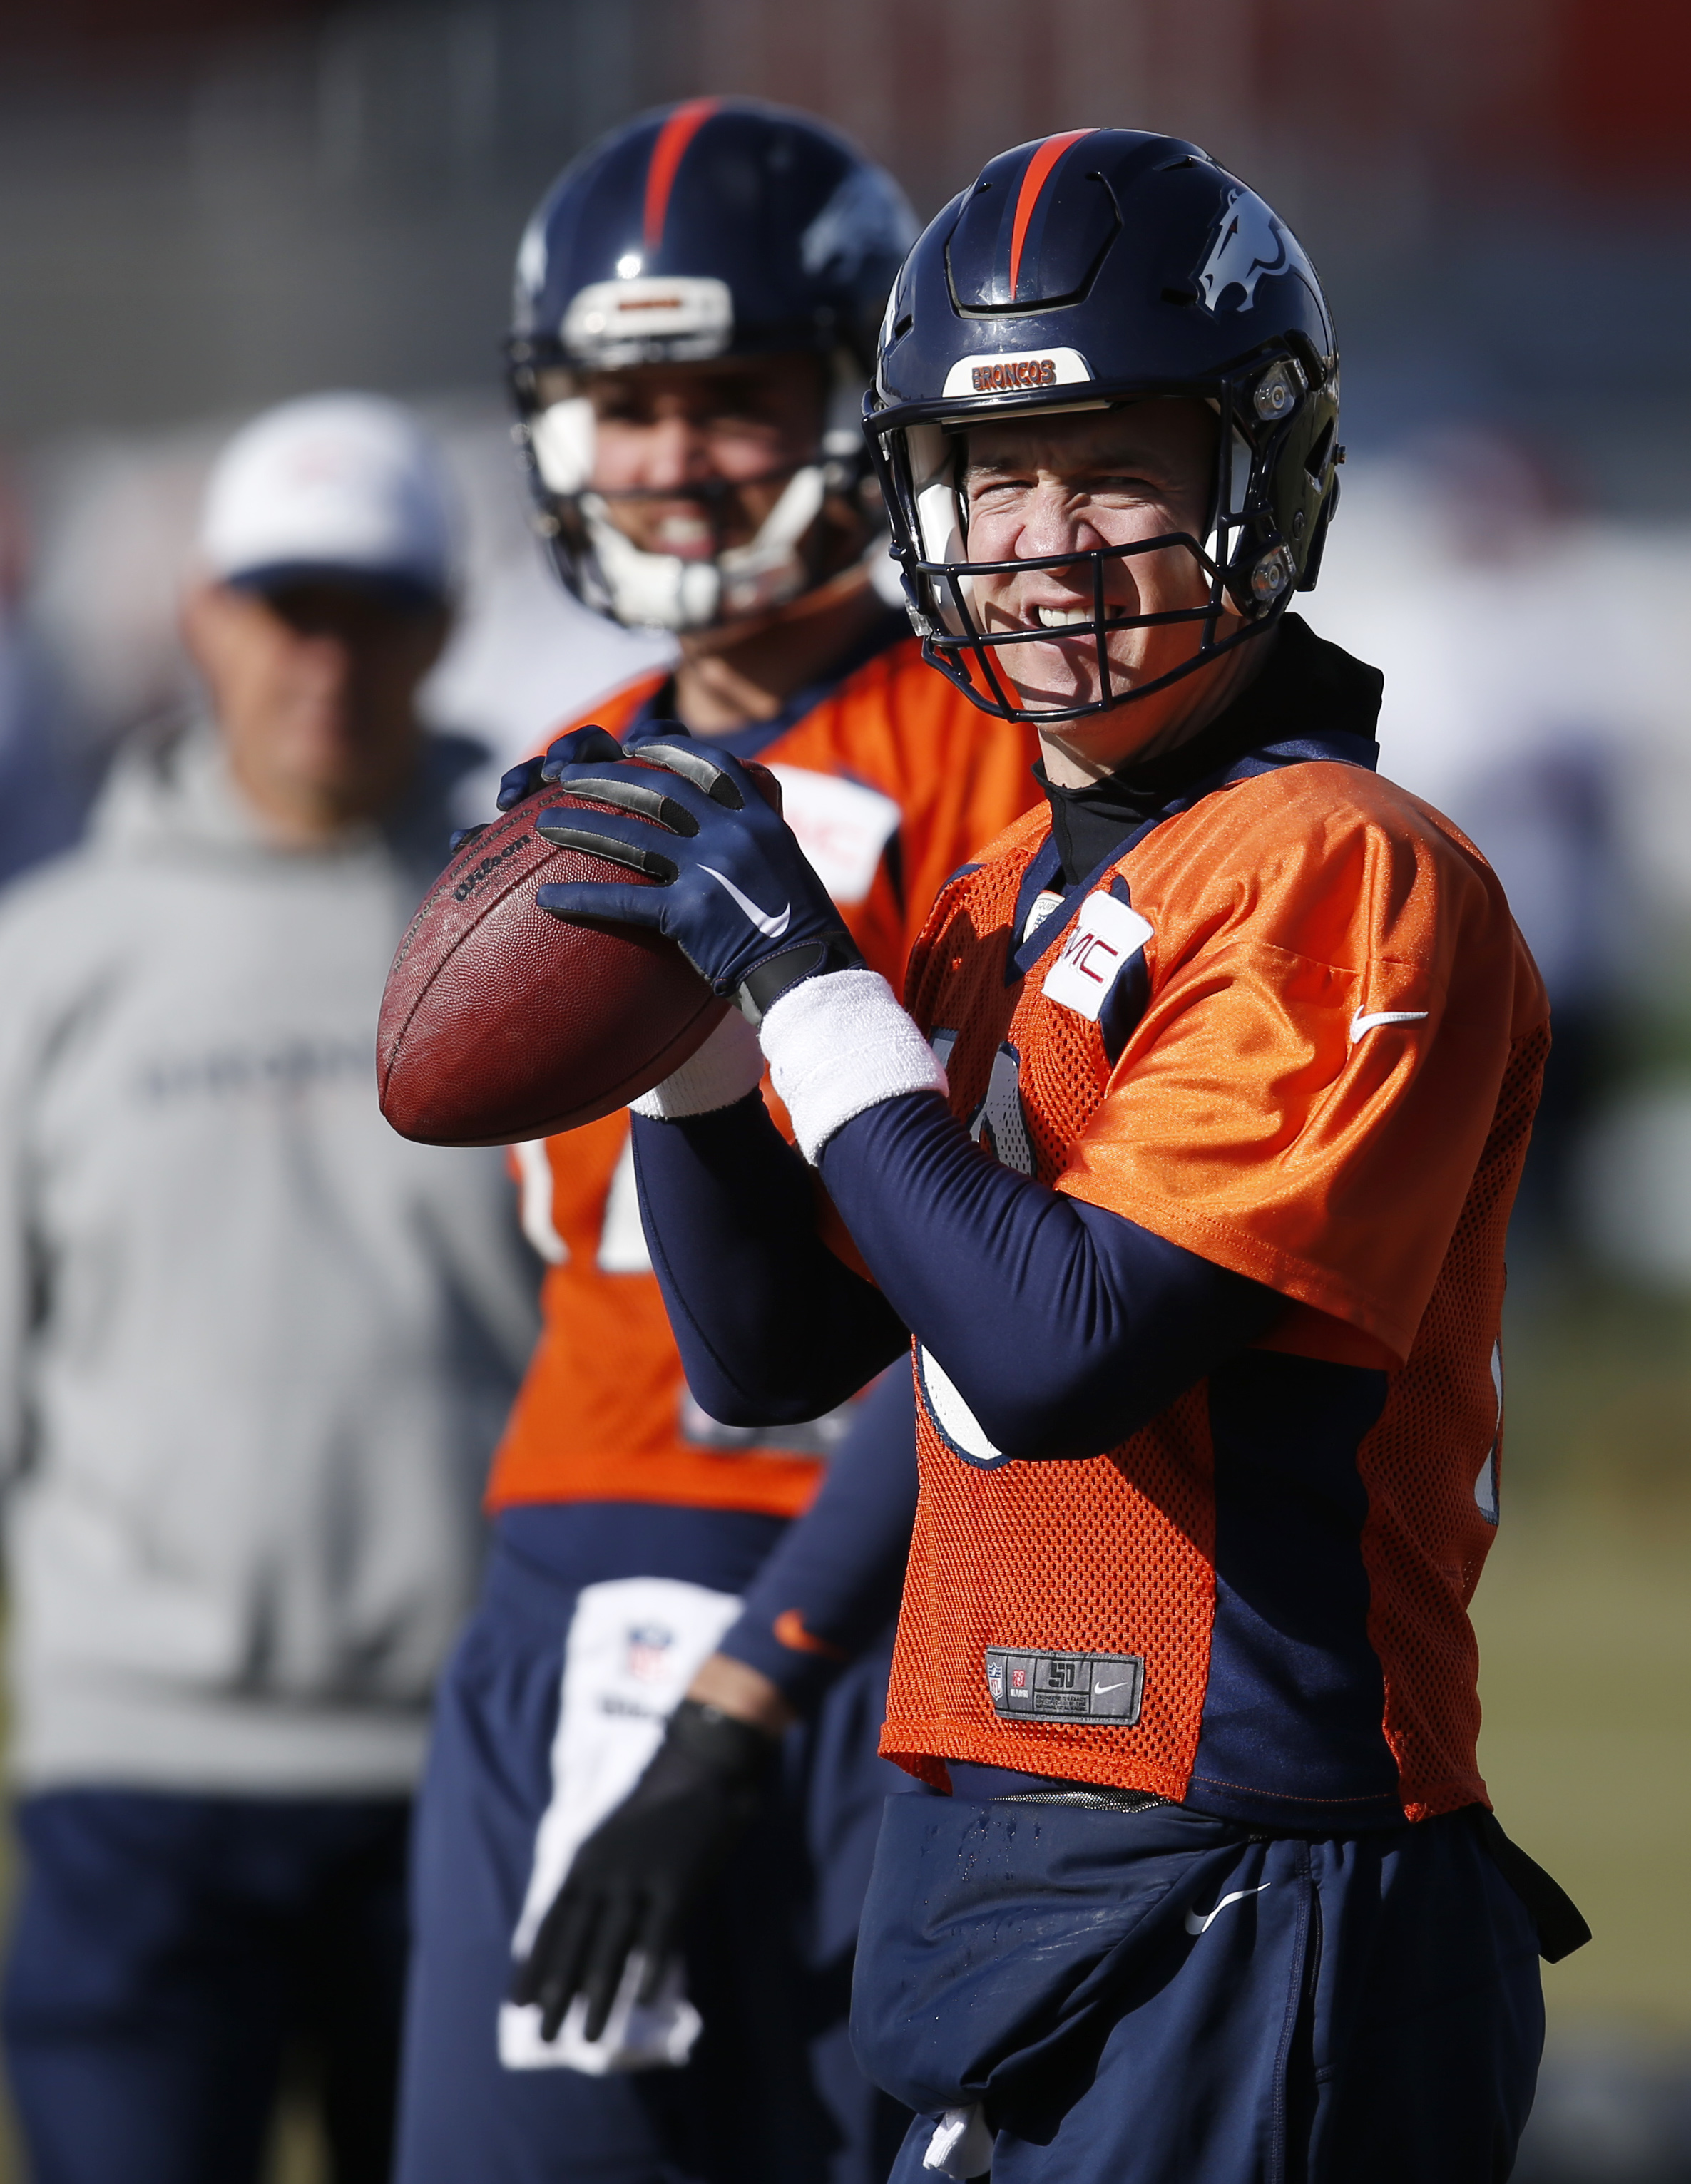 Denver Broncos quarterback Peyton Manning, front, warms up as backup quarterback Brock Osweiler looks on during an NFL football practice at the team's headquarters Wednesday, Jan. 13, 2016, in Englewood, Colo. The Broncos will host the Pittsburgh Steelers